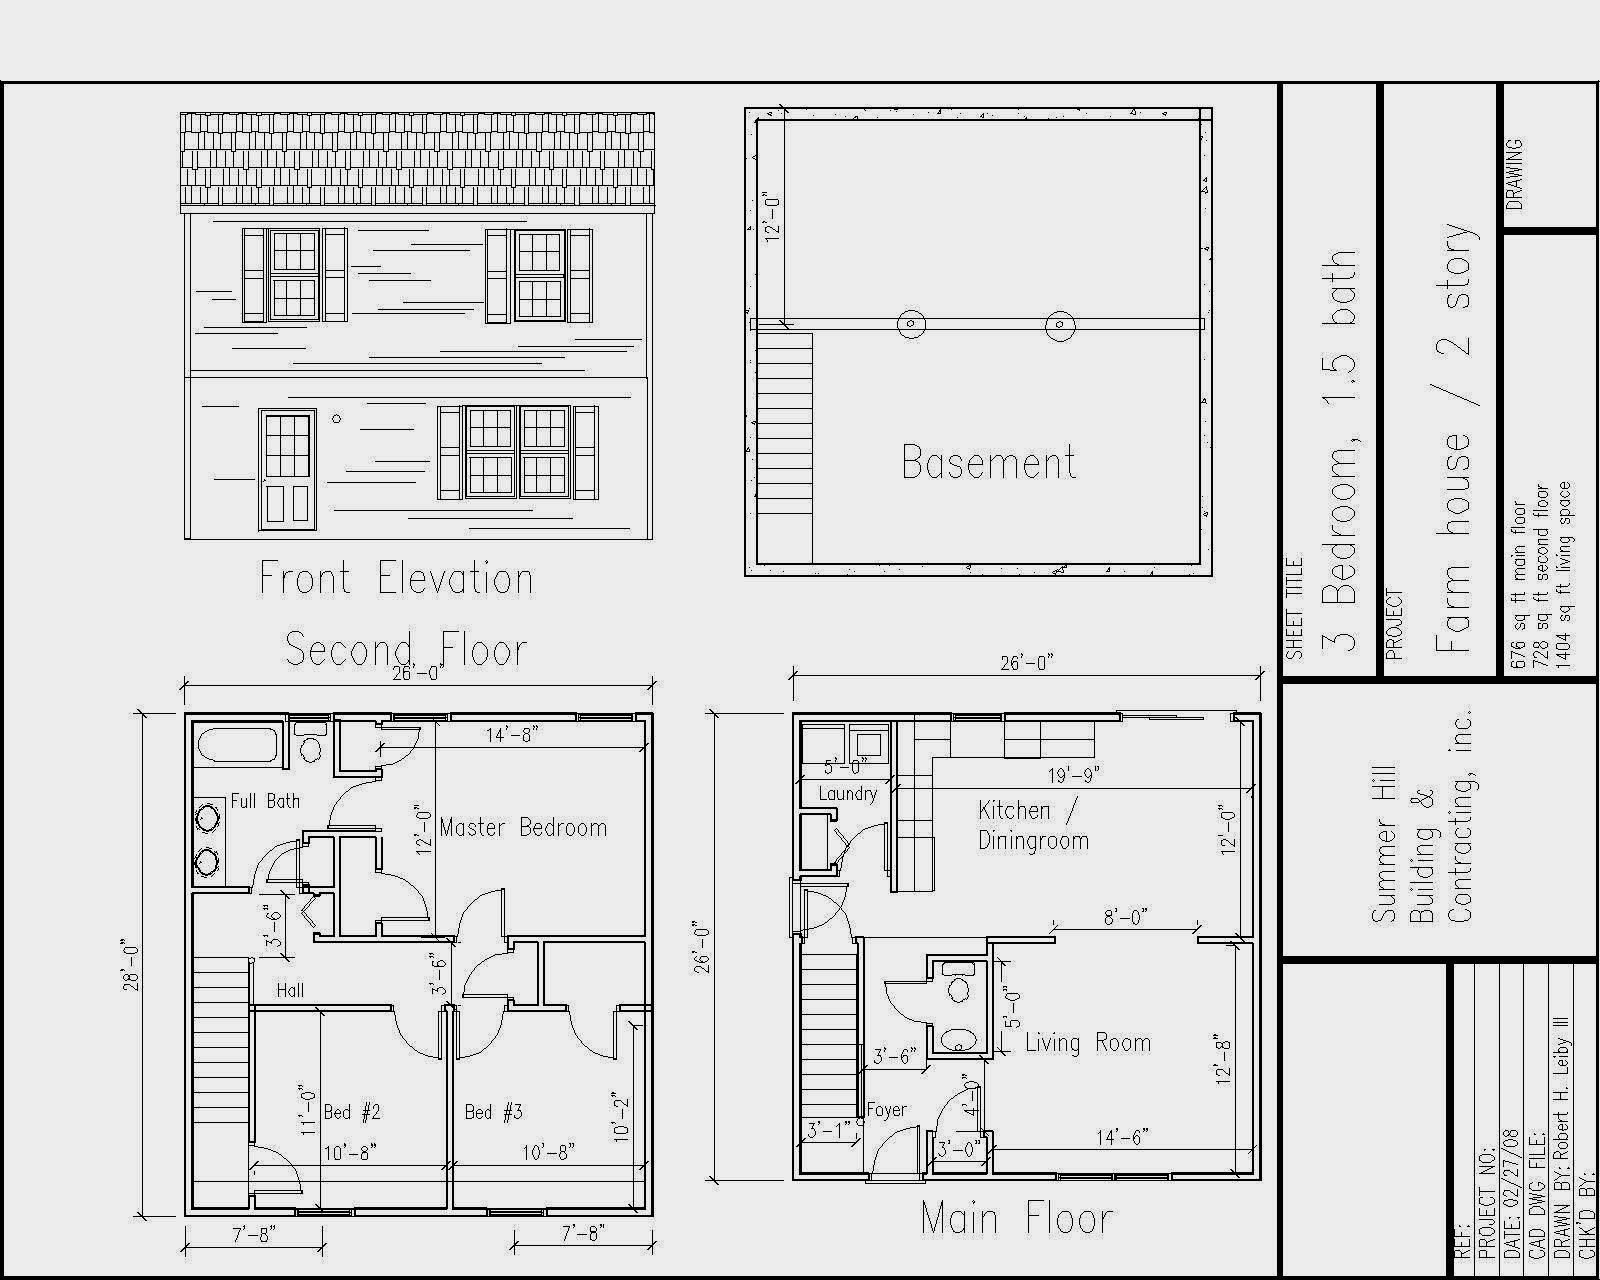 basic house plans basic home plans designs tavernierspa 5 house floor plan basic house design plans